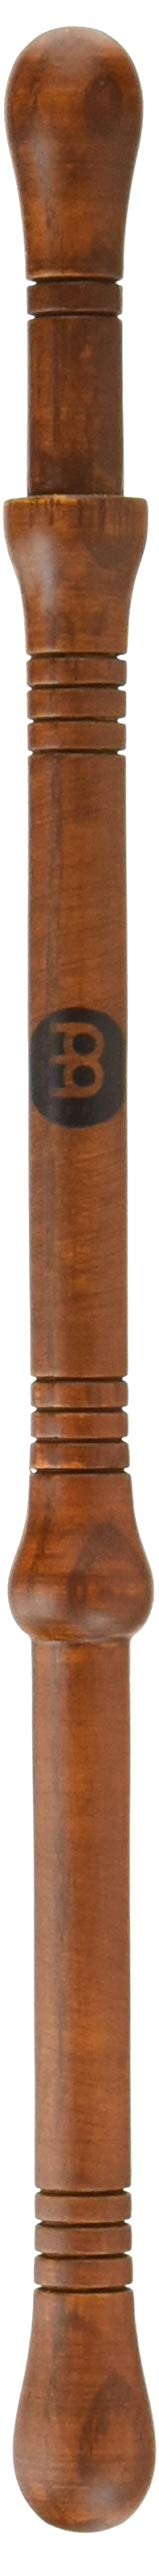 Meinl Percussion FDT3 Frame Drum Tipper, Ash Wood by Meinl Percussion